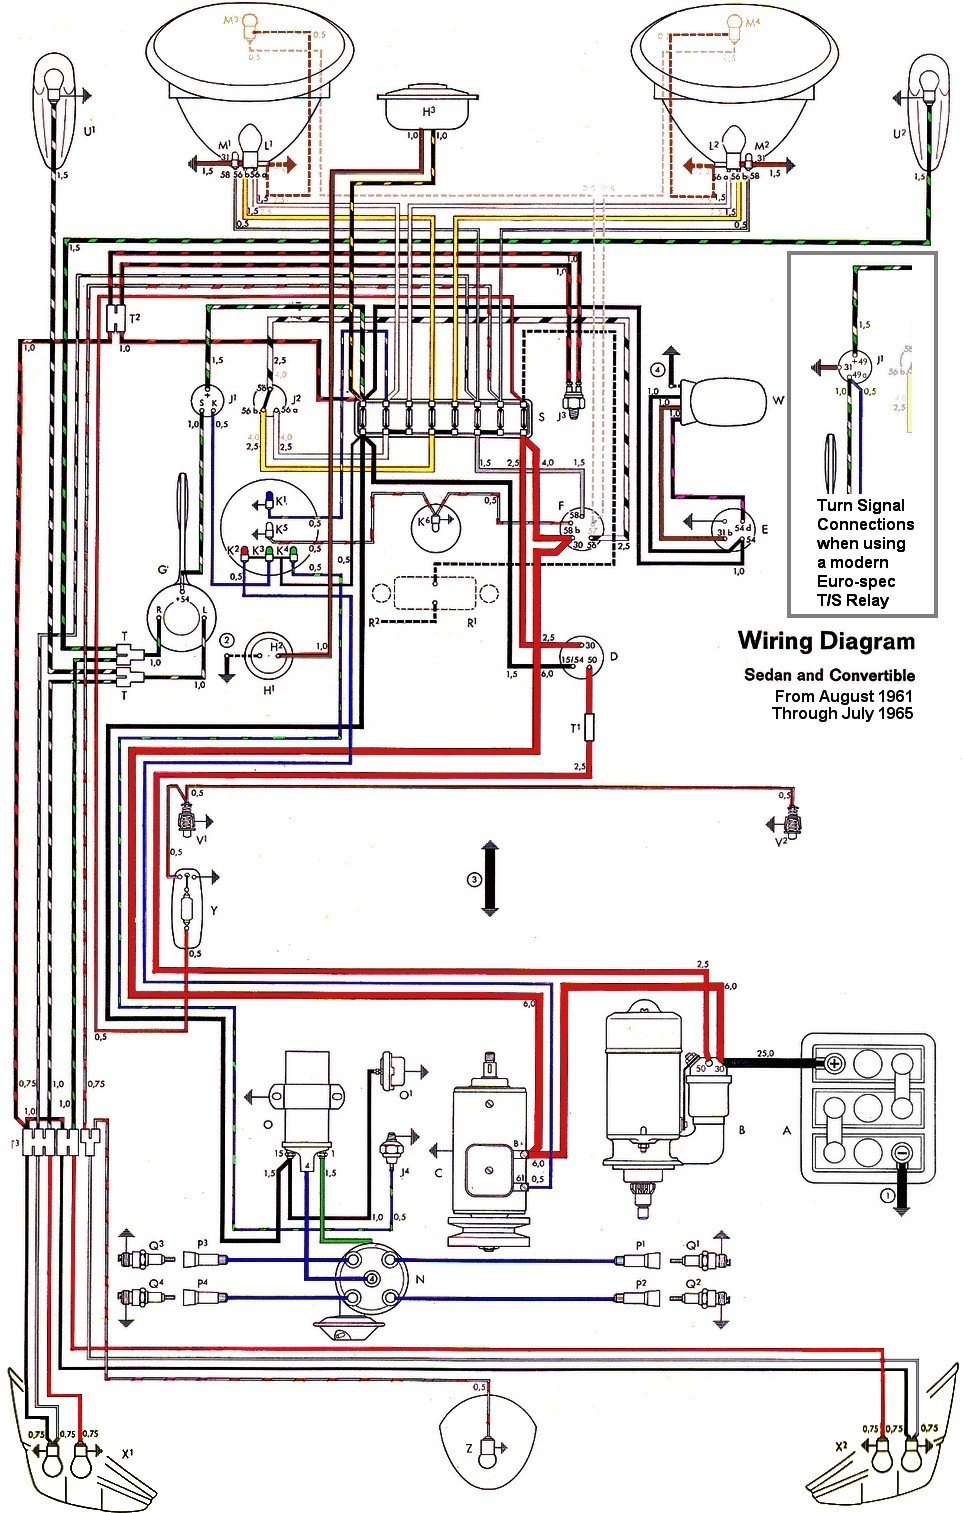 88 vw fox fuse diagram wiring diagram rh 4 tempoturn de